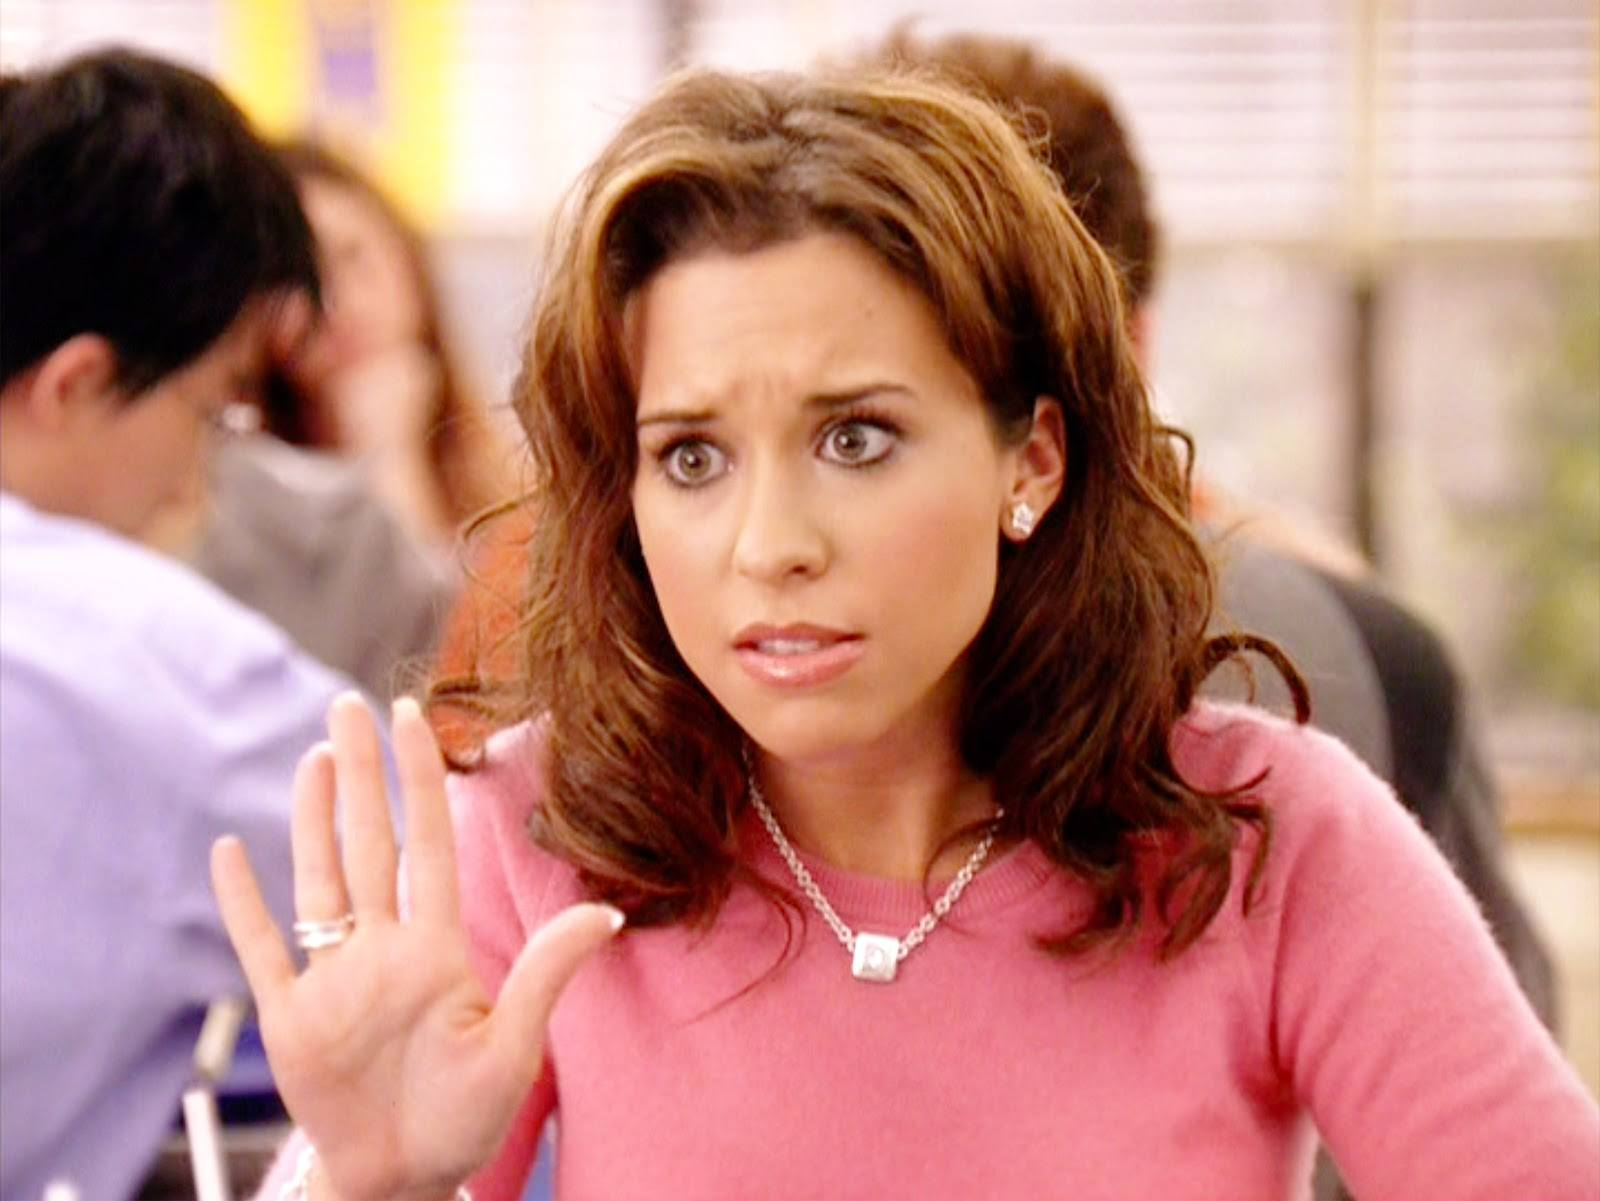 Gretchen Wienners 4 Where Are The Cast Of Mean Girls Now?